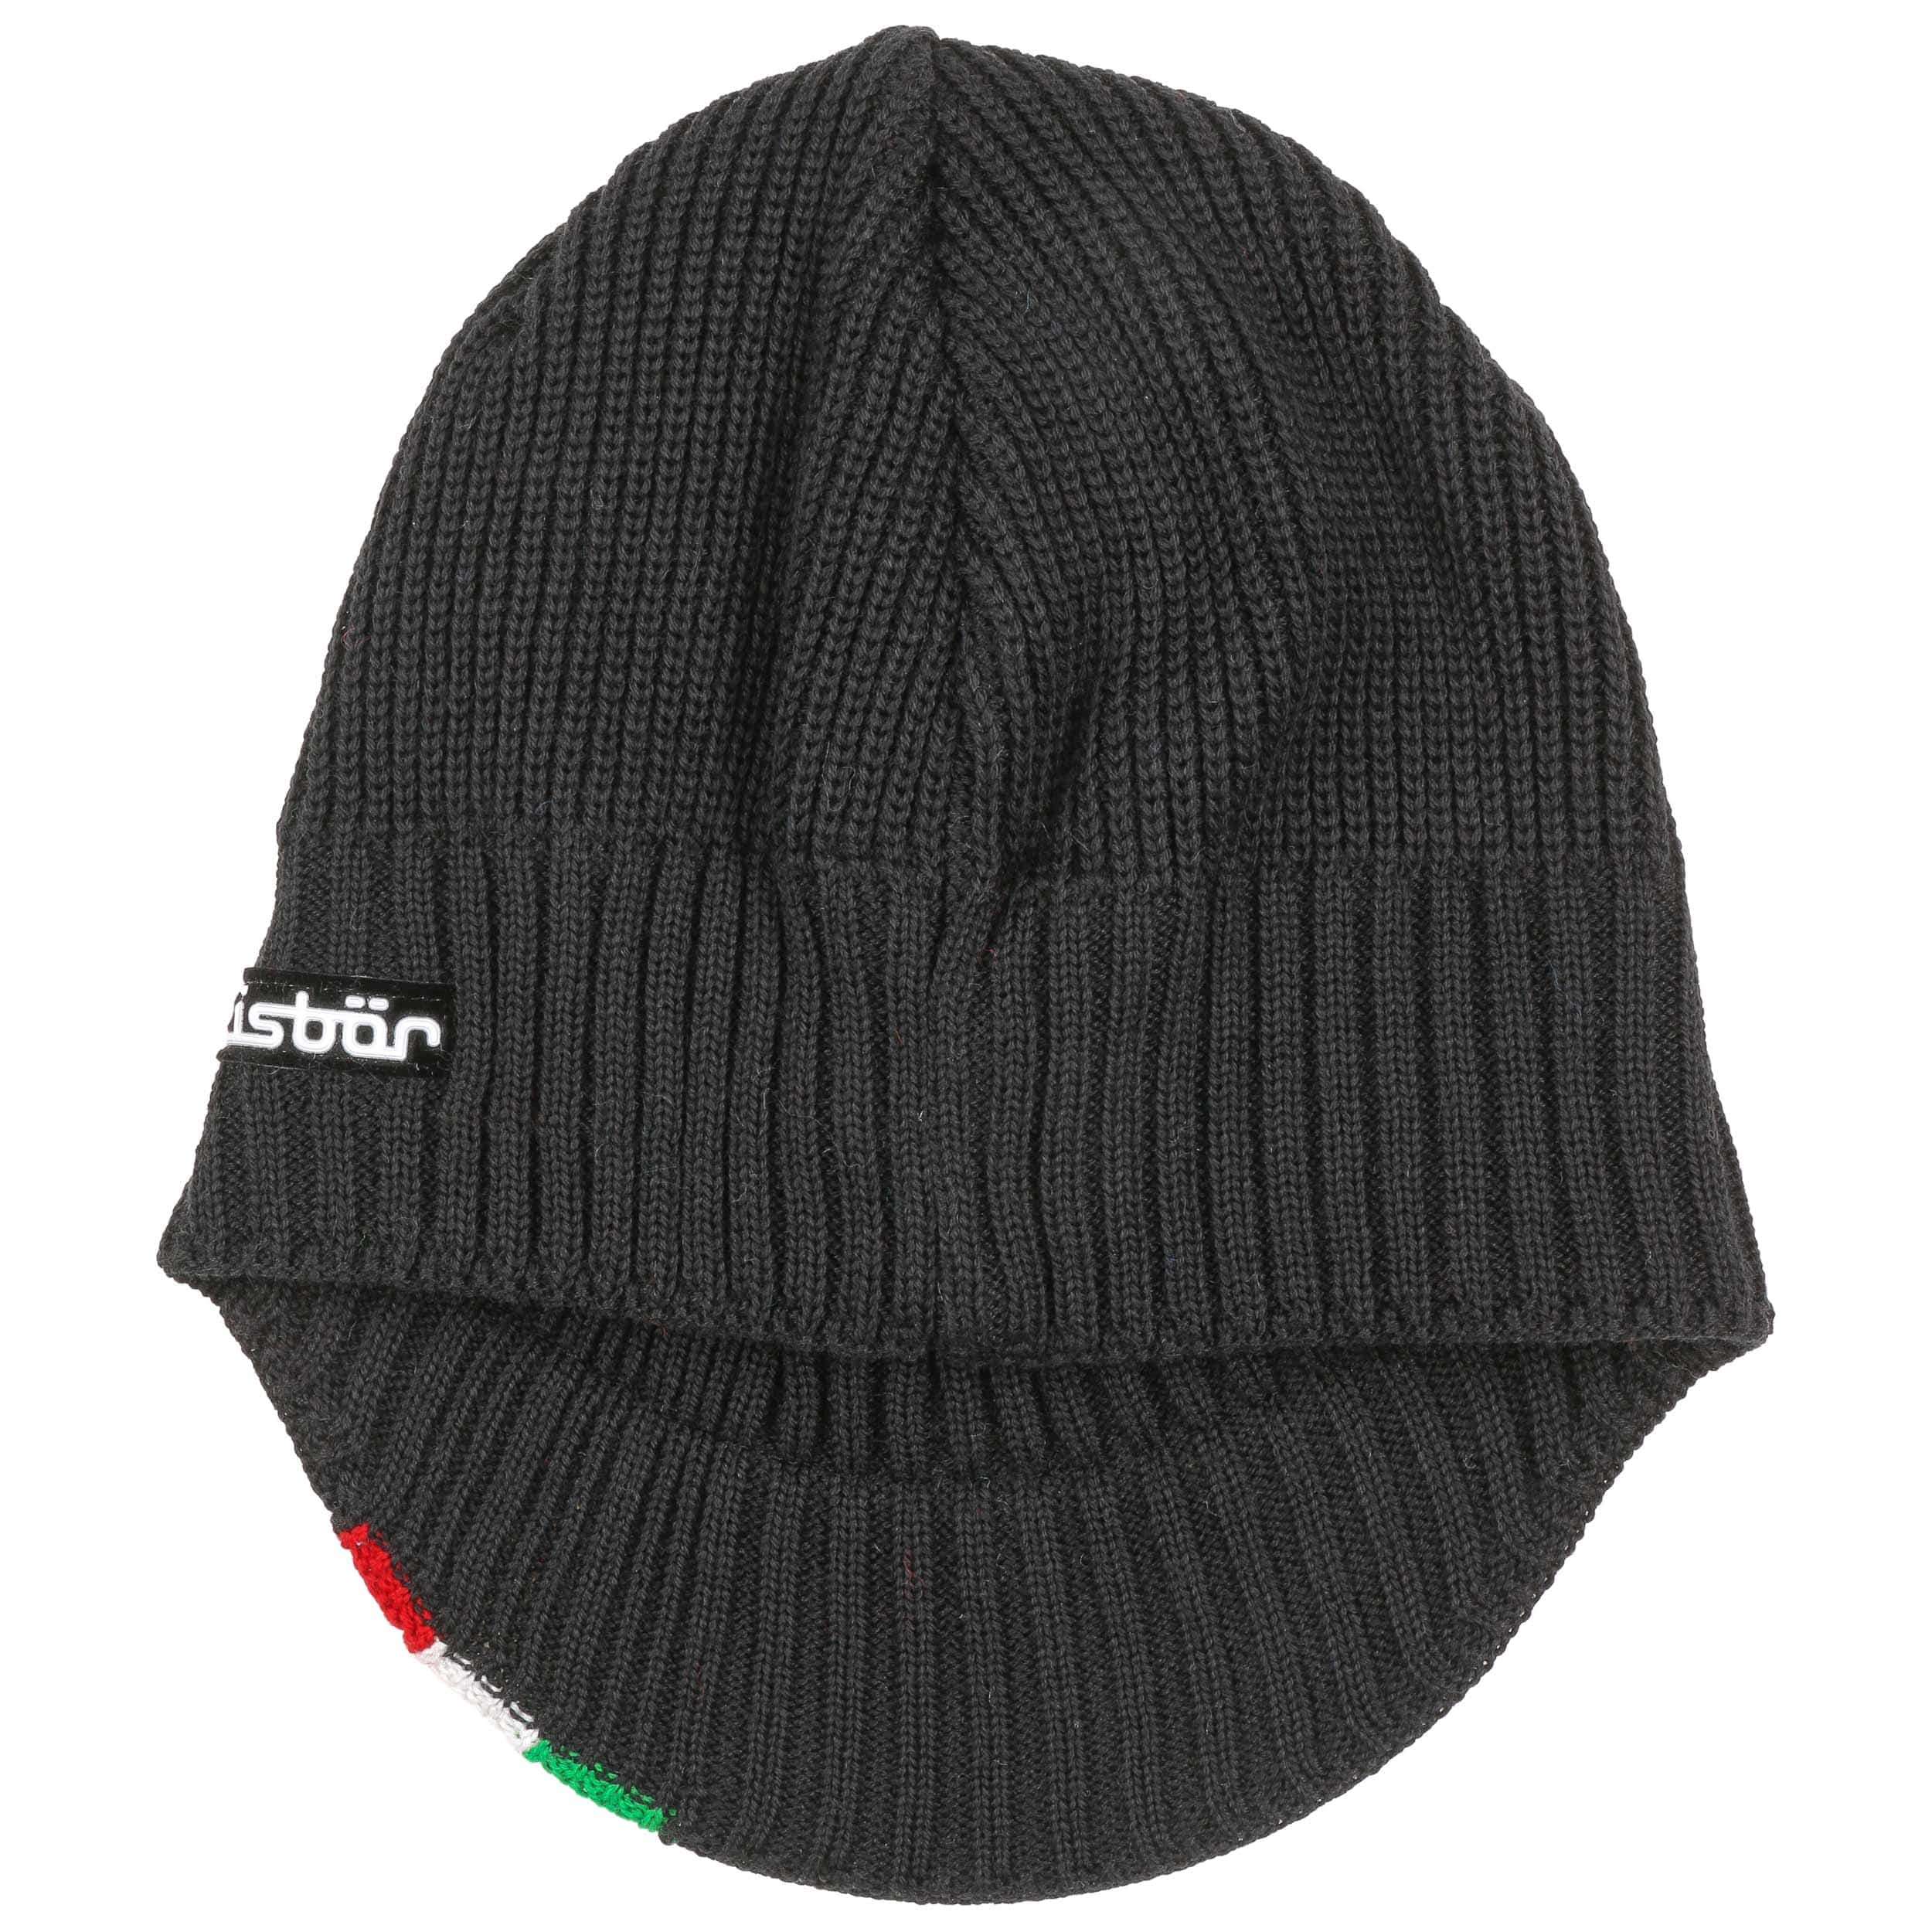 Green-White-Red Ski Cap by Eisbär - black 1 ... 93a5ffbefc2